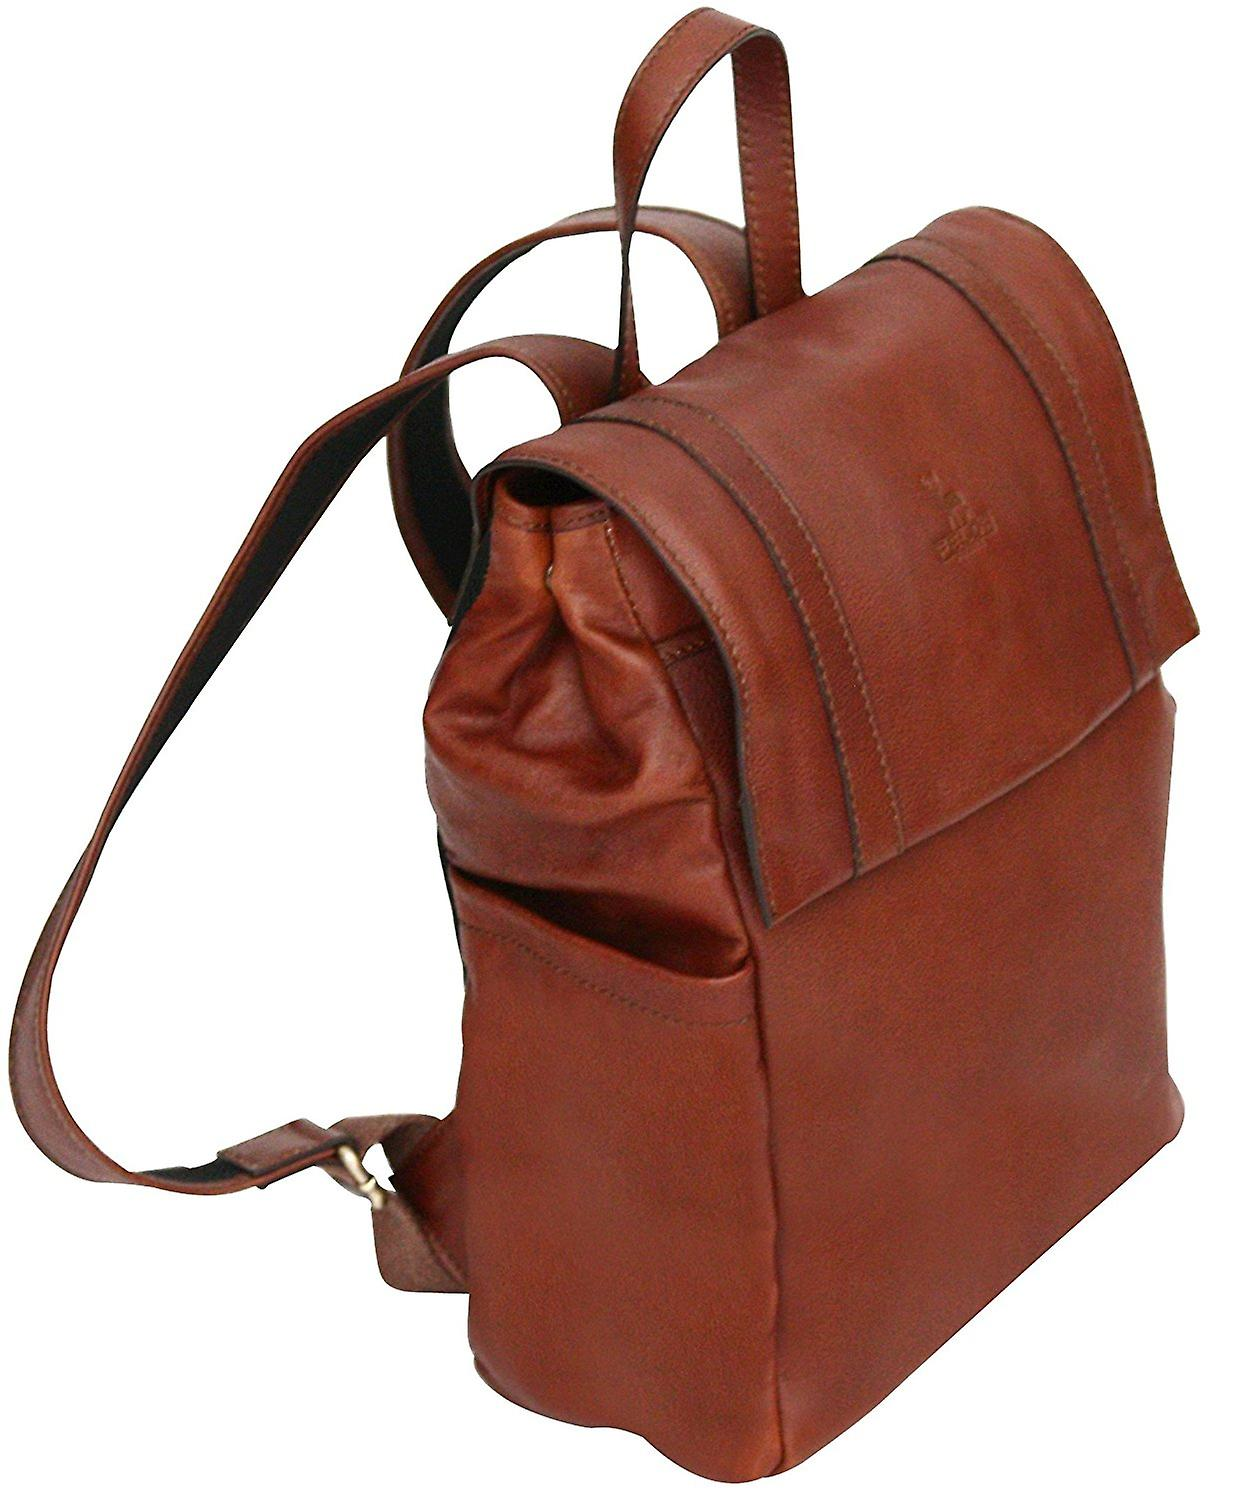 Genuine Leather Backpack Case Rucksack Bag Satchel With Padded Tablet Pocket Made In Italy